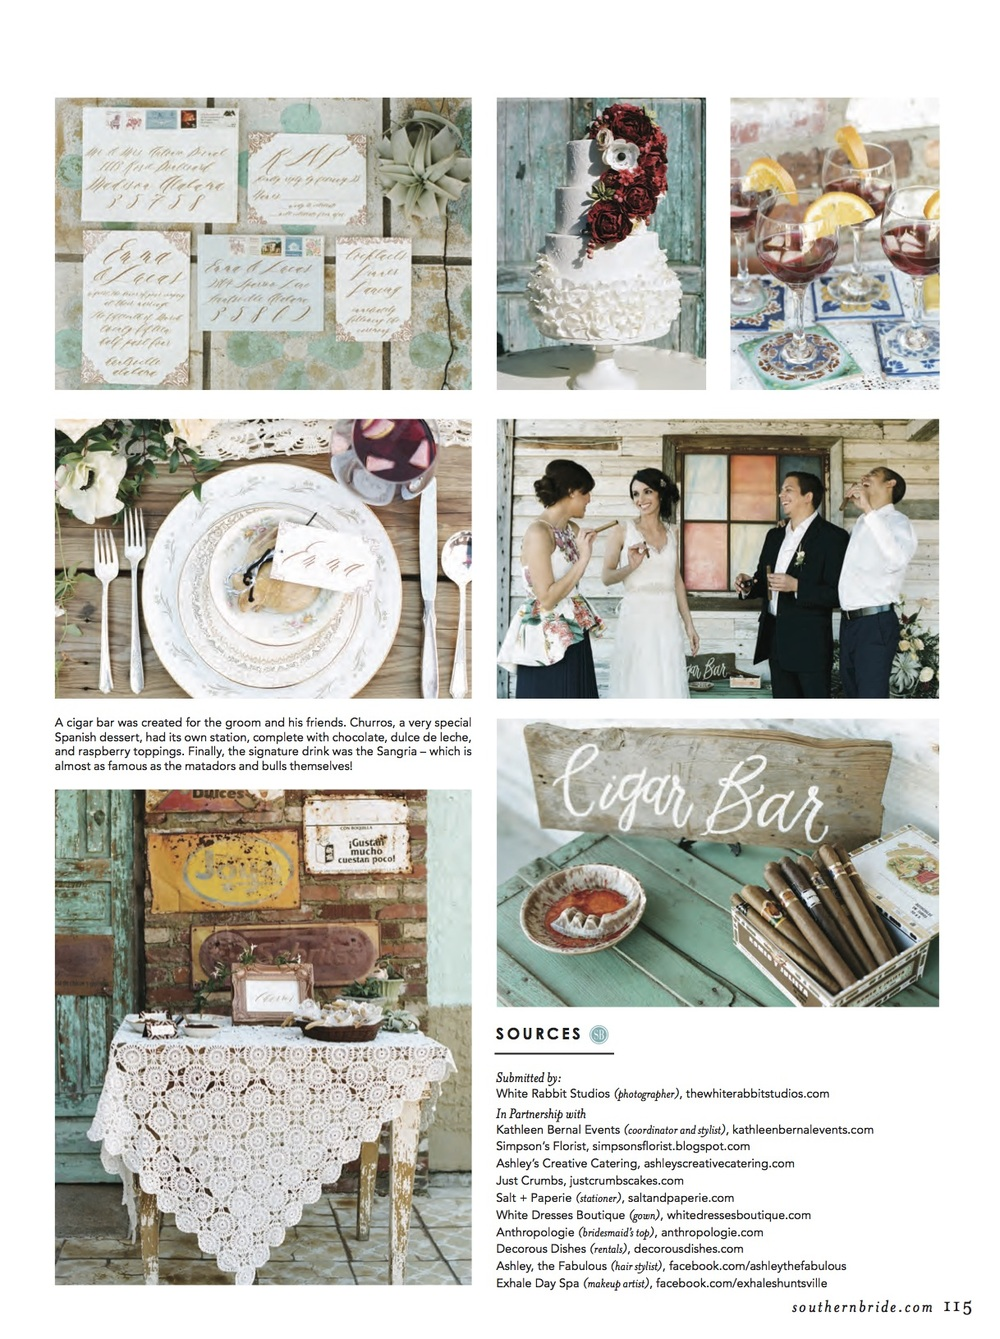 Photo via Southern Bride Magazine.